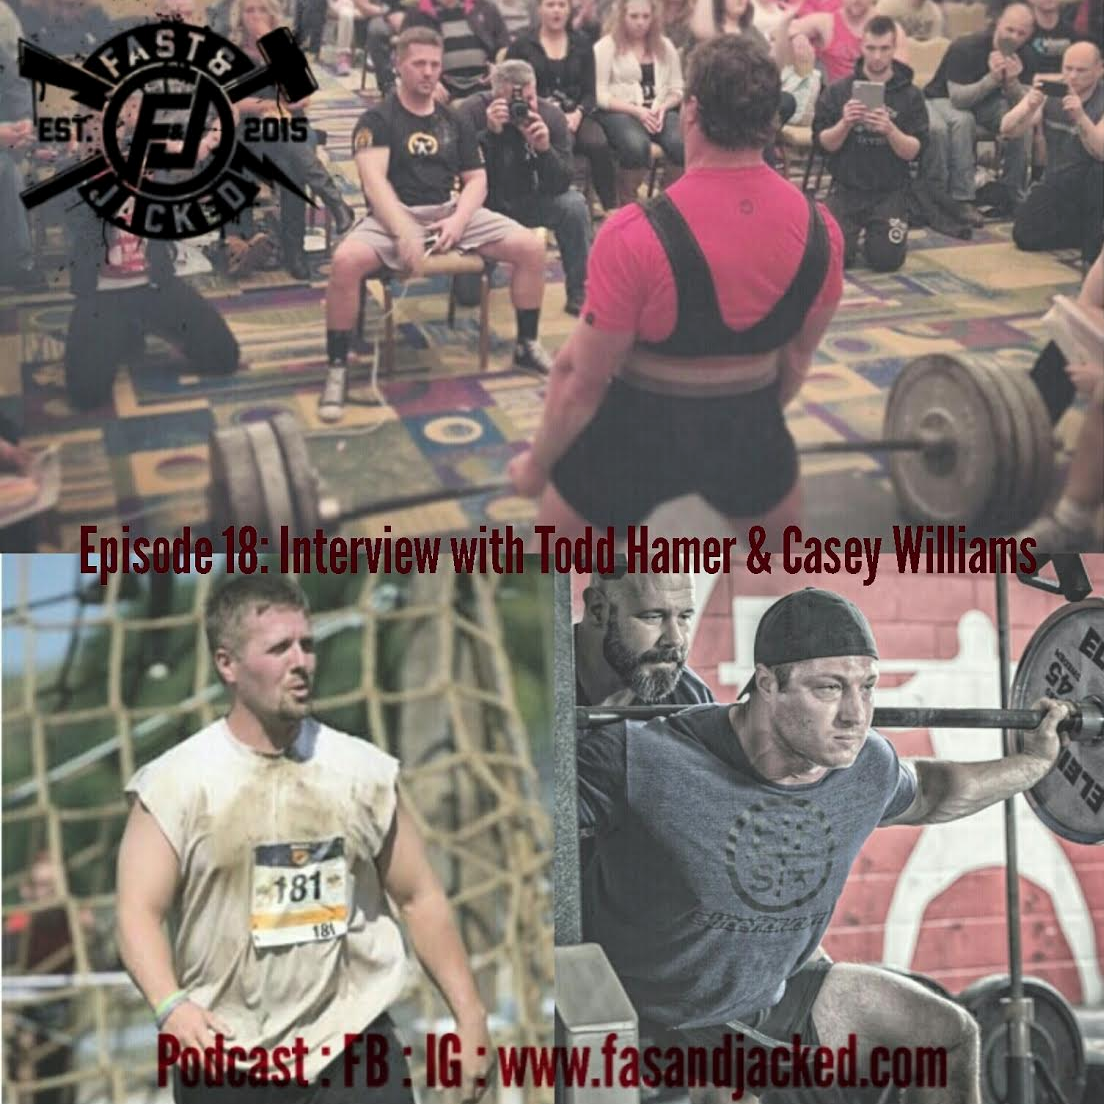 Fast and Jacked: Todd Hamer and Casey Williams